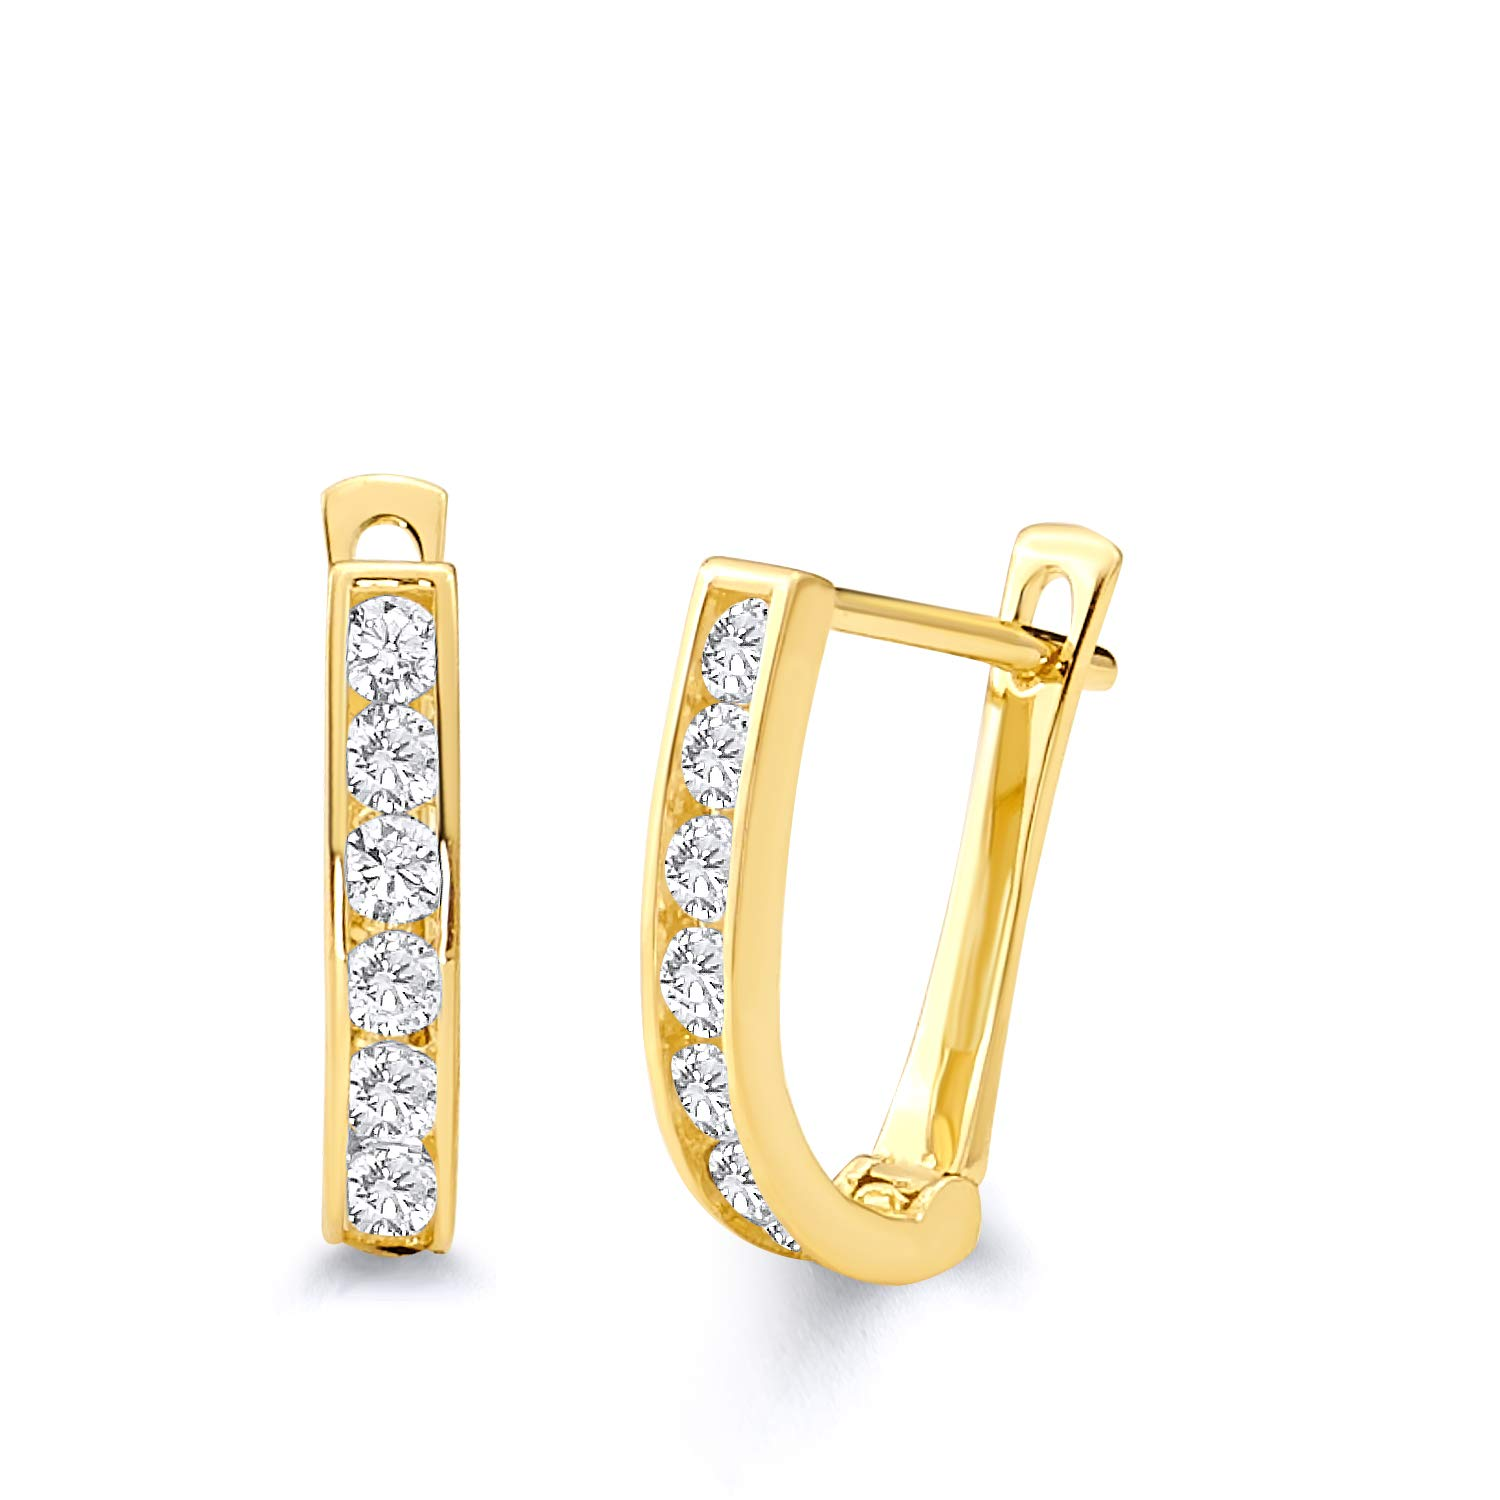 13 x 10 mm 14k Yellow Gold 2mm Thickness CZ Channel-set Huggies Earrings